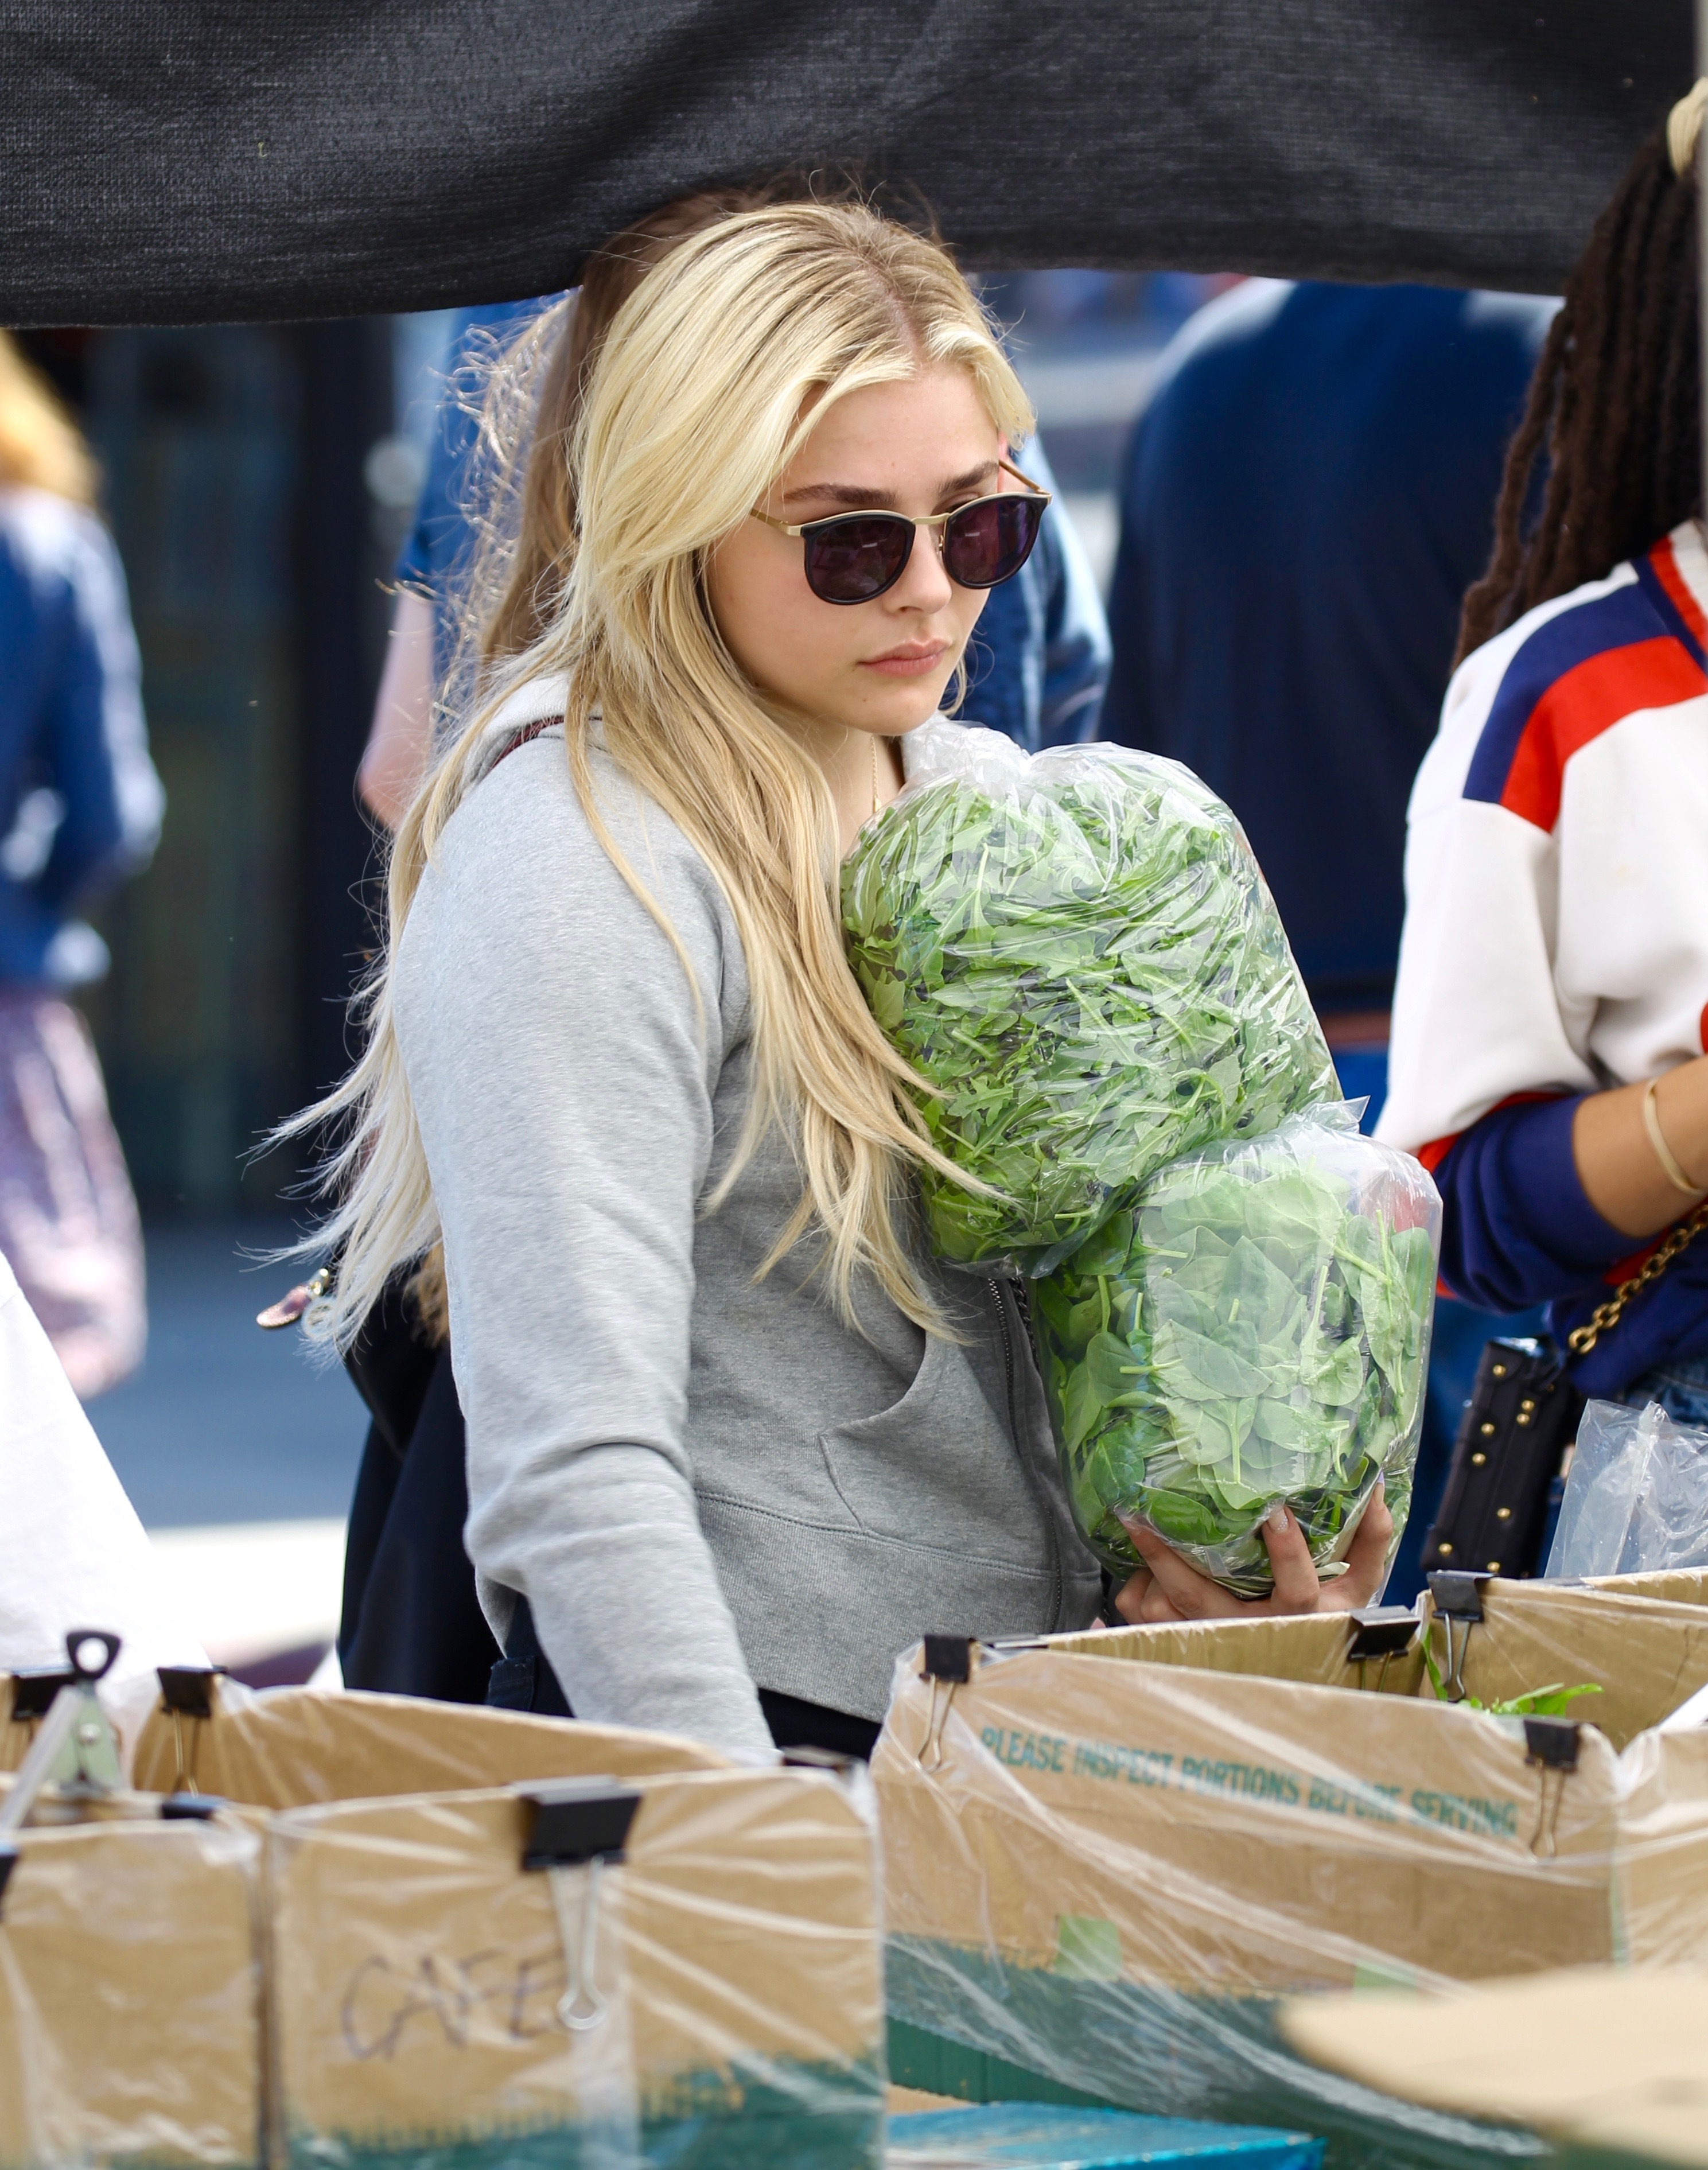 Chloe Moretz shops at the Studio City Farmers Market in Los Angeles on May 21, 2017.